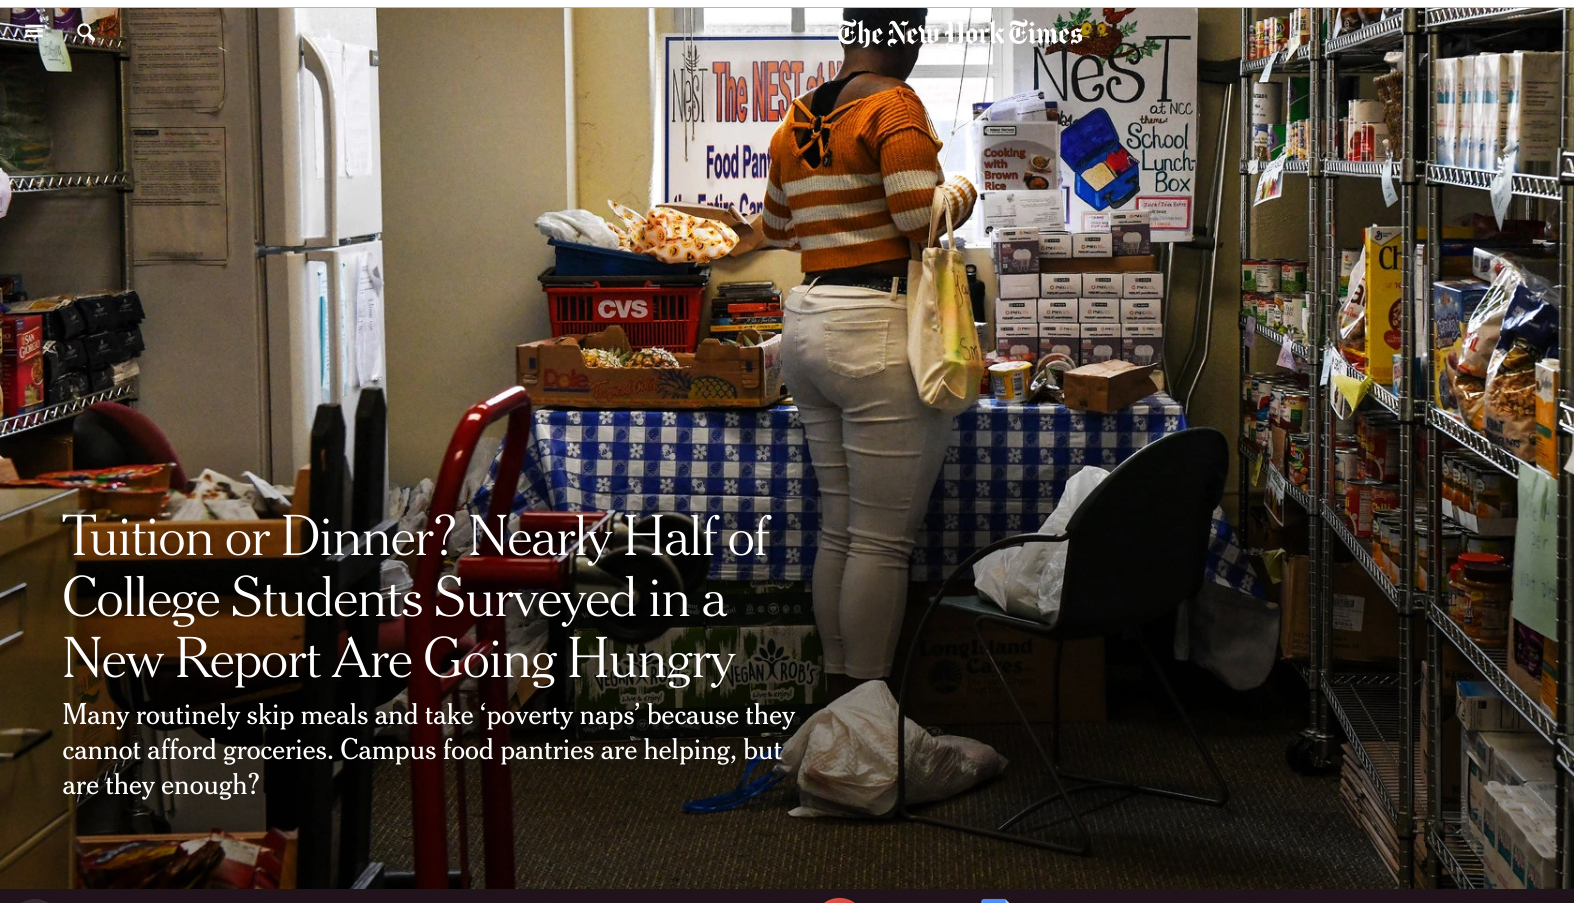 National Review Shreds New York Times on Alleged Hunger of College Students